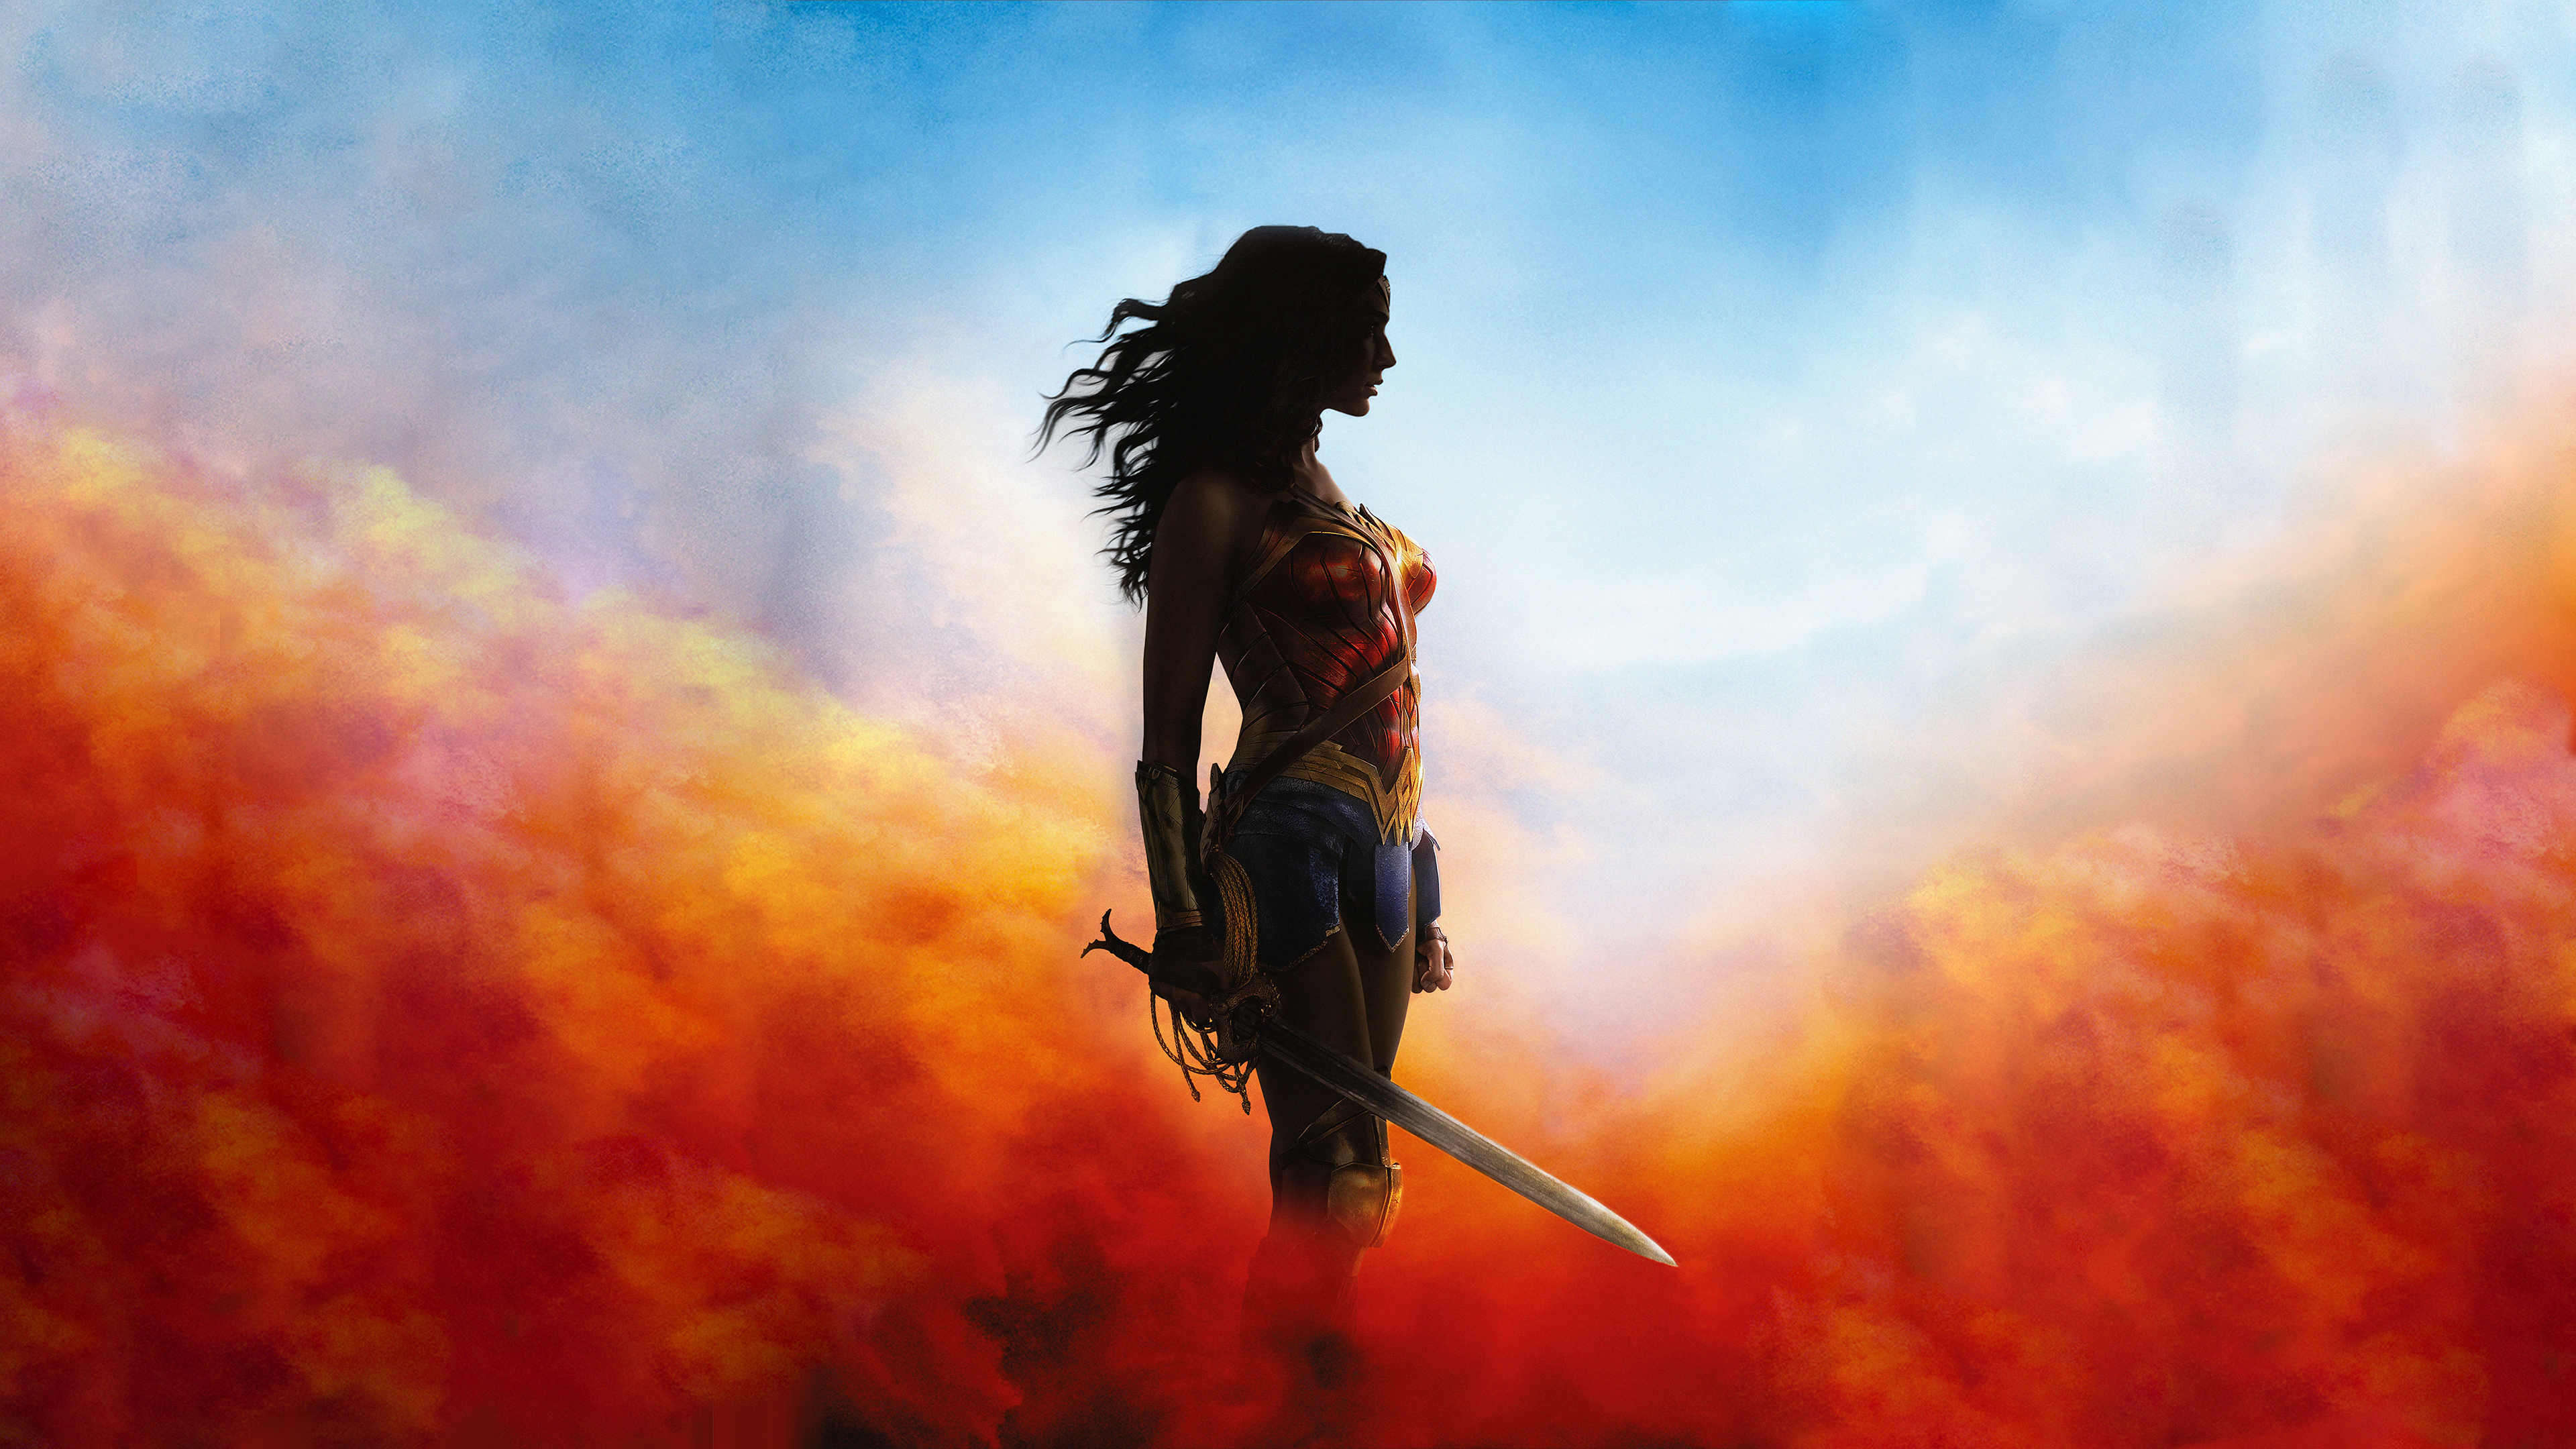 Wonderwoman Live Wallpaper: 42 Steely Facts About Wonder Woman